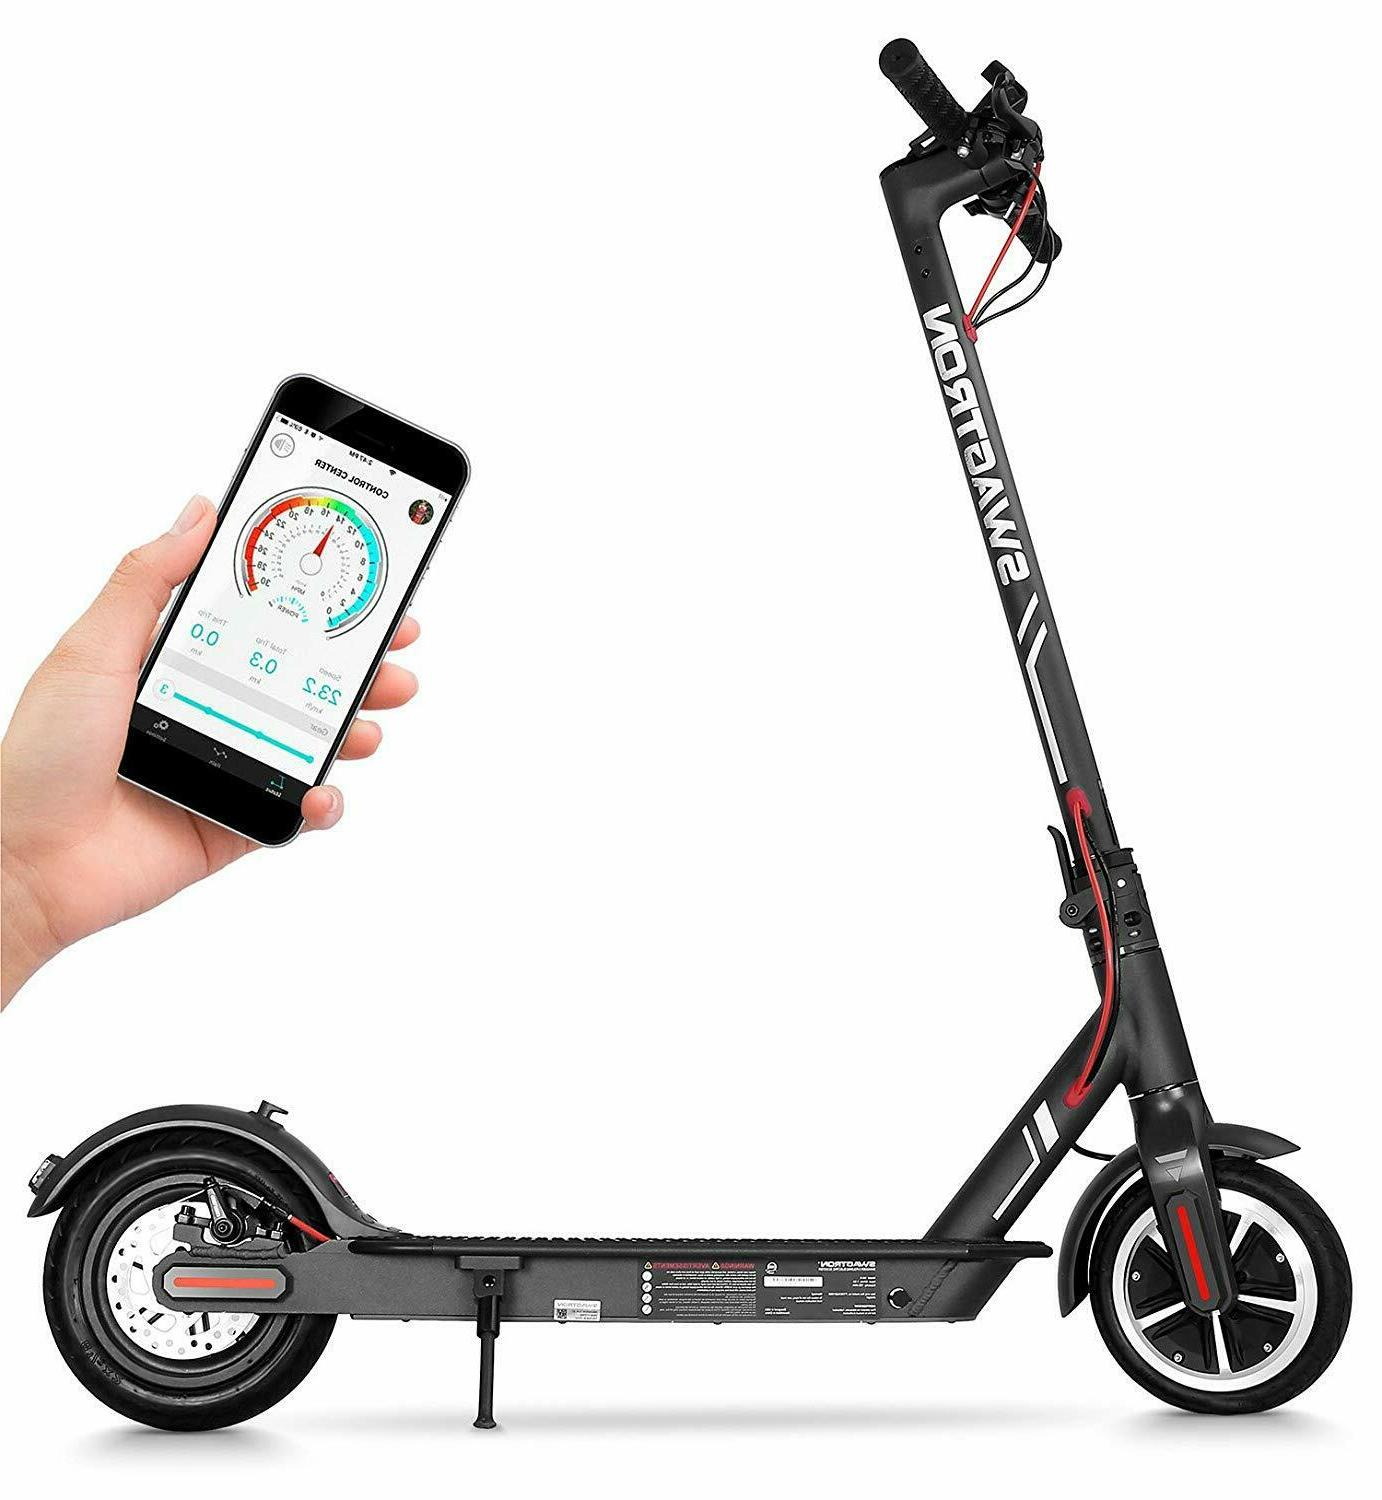 swagger 5 city commuter foldable electric scooter